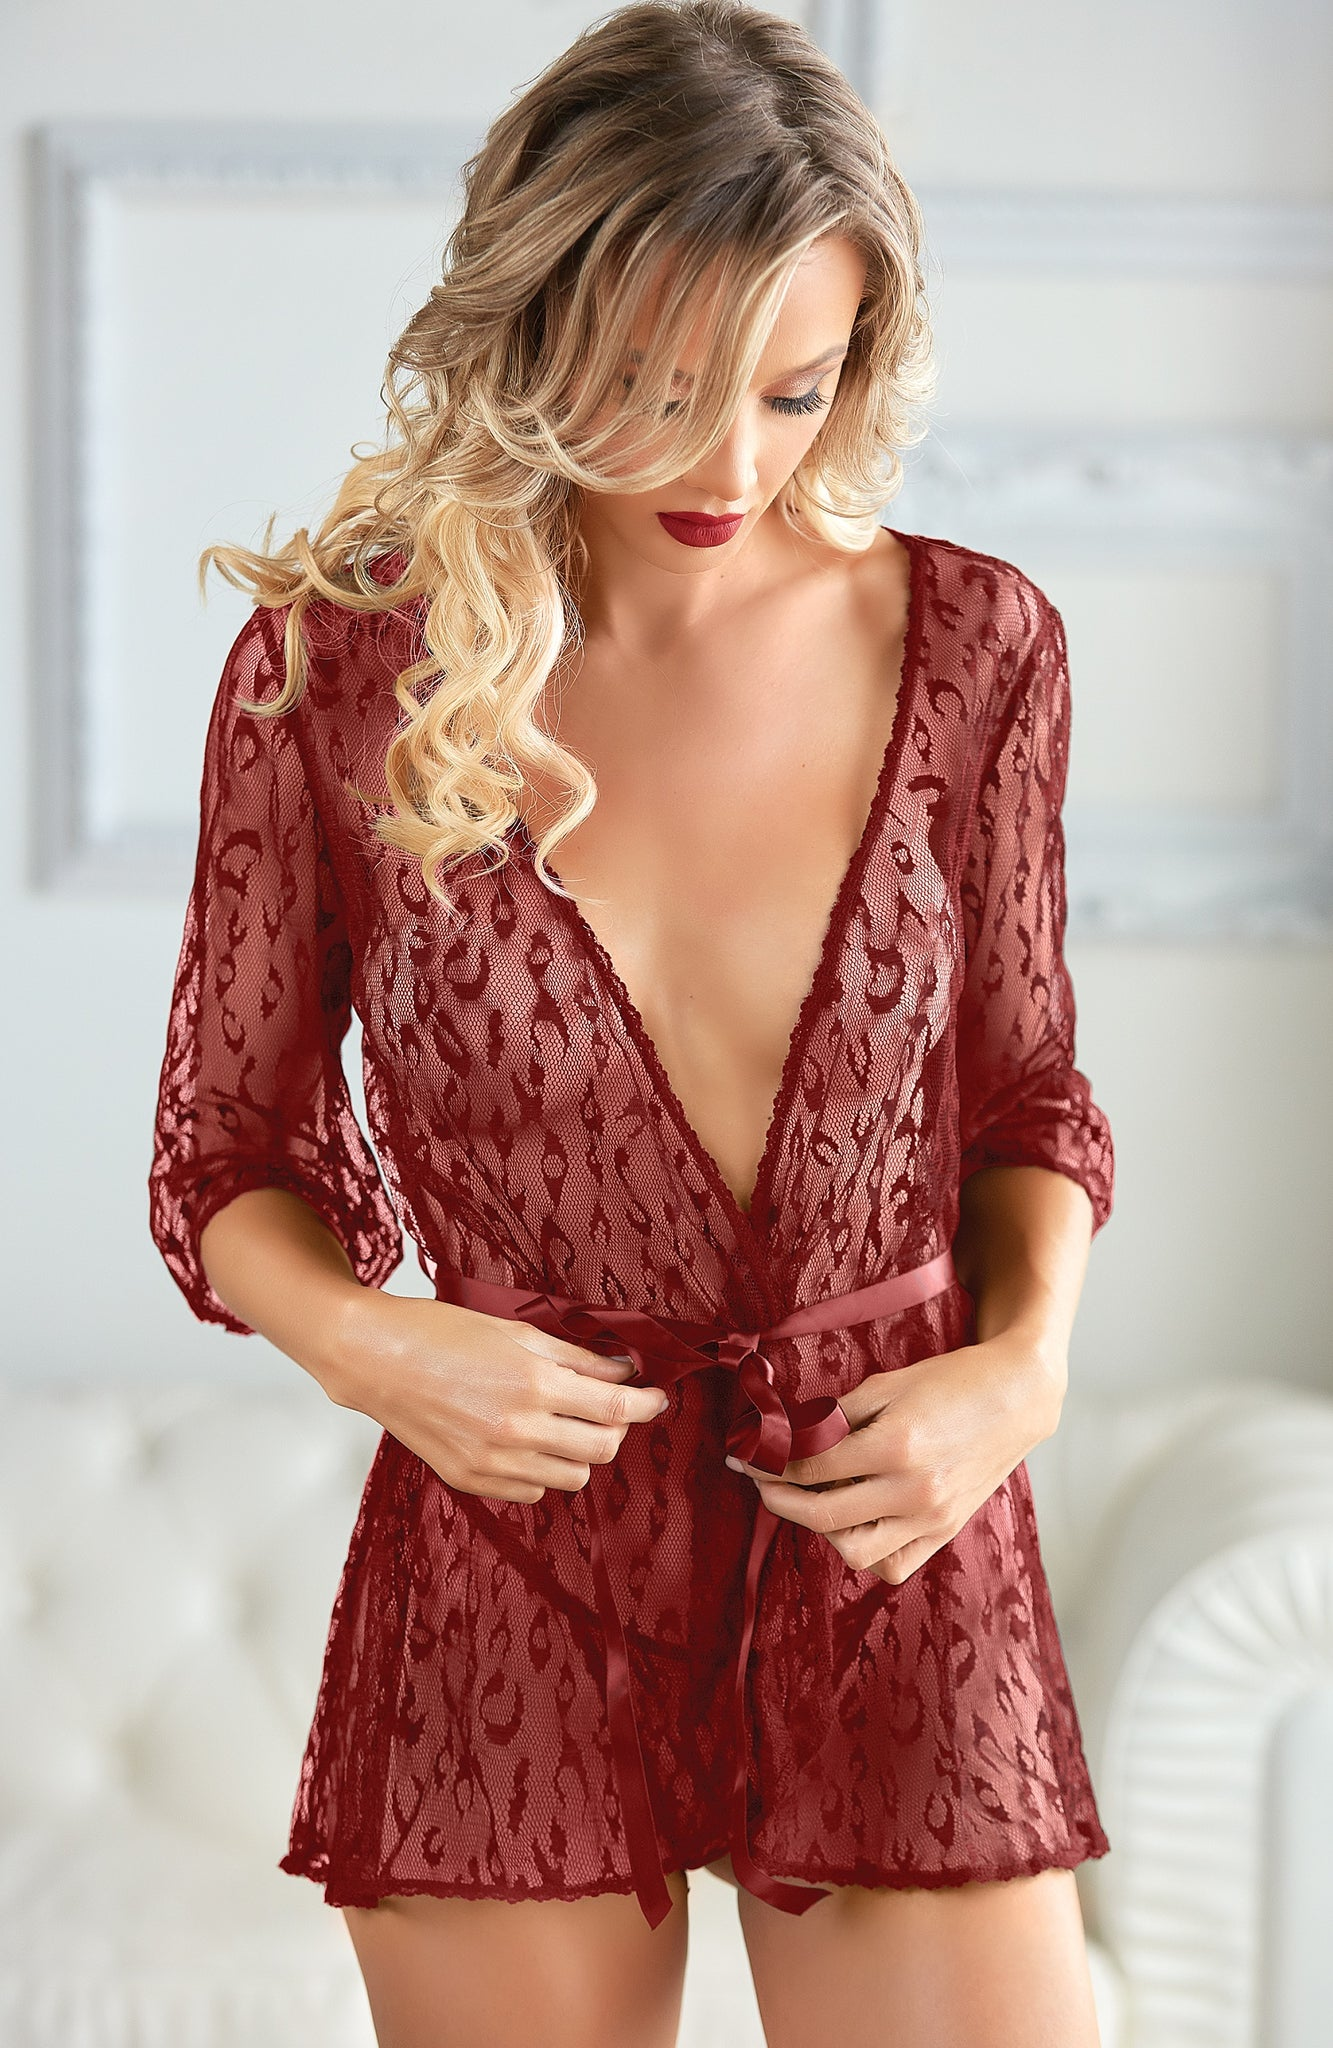 Leopard ruby lace robe - Sexylingerieland